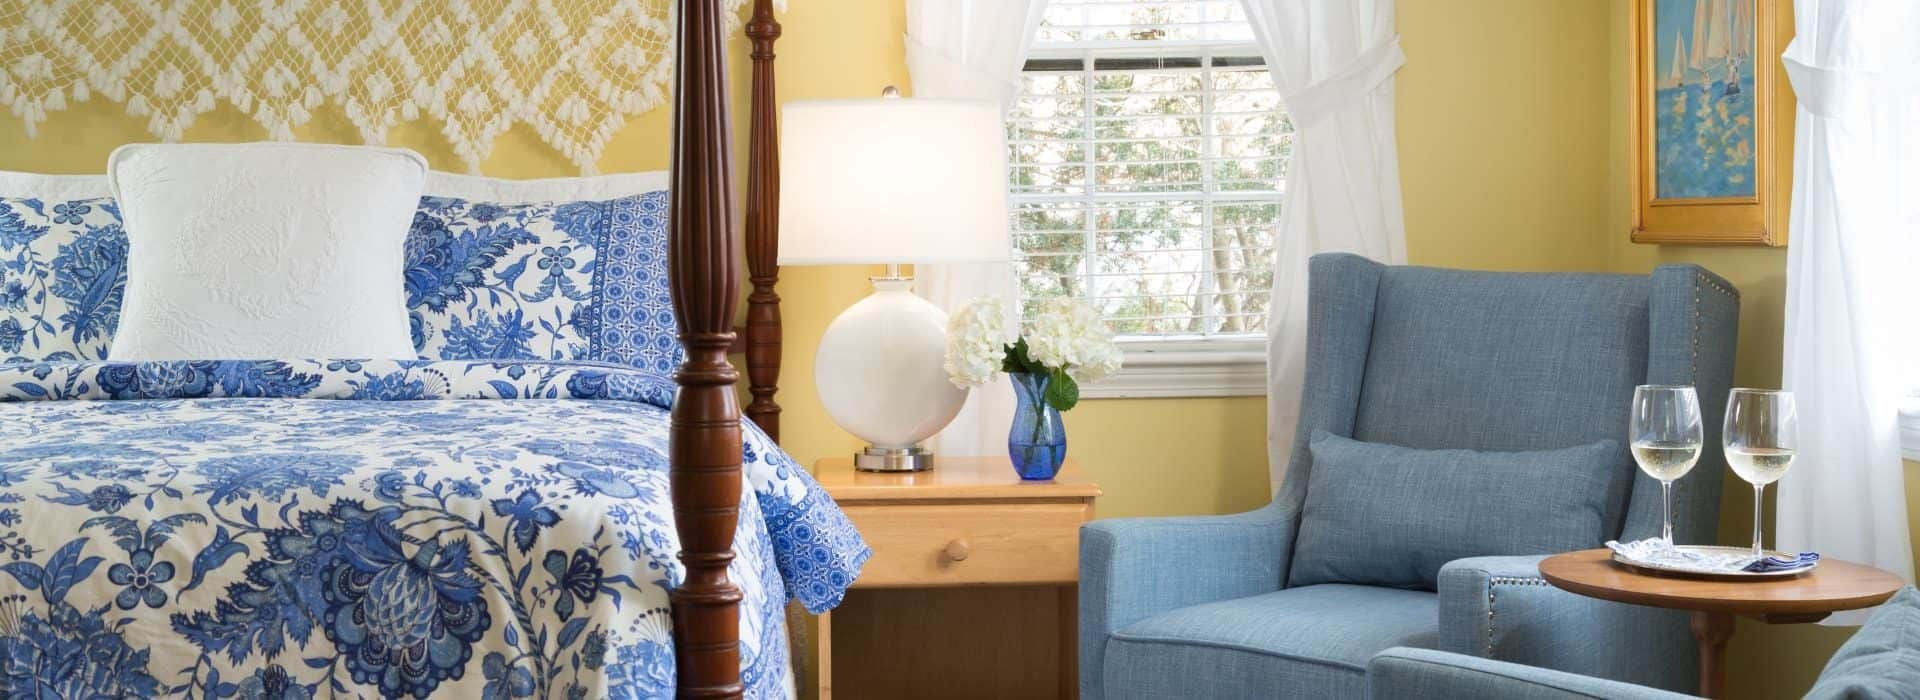 Bedroom with yellow walls, dark wooden four-poster bed, blue and white paisley bedding, denim upholstered arm chair